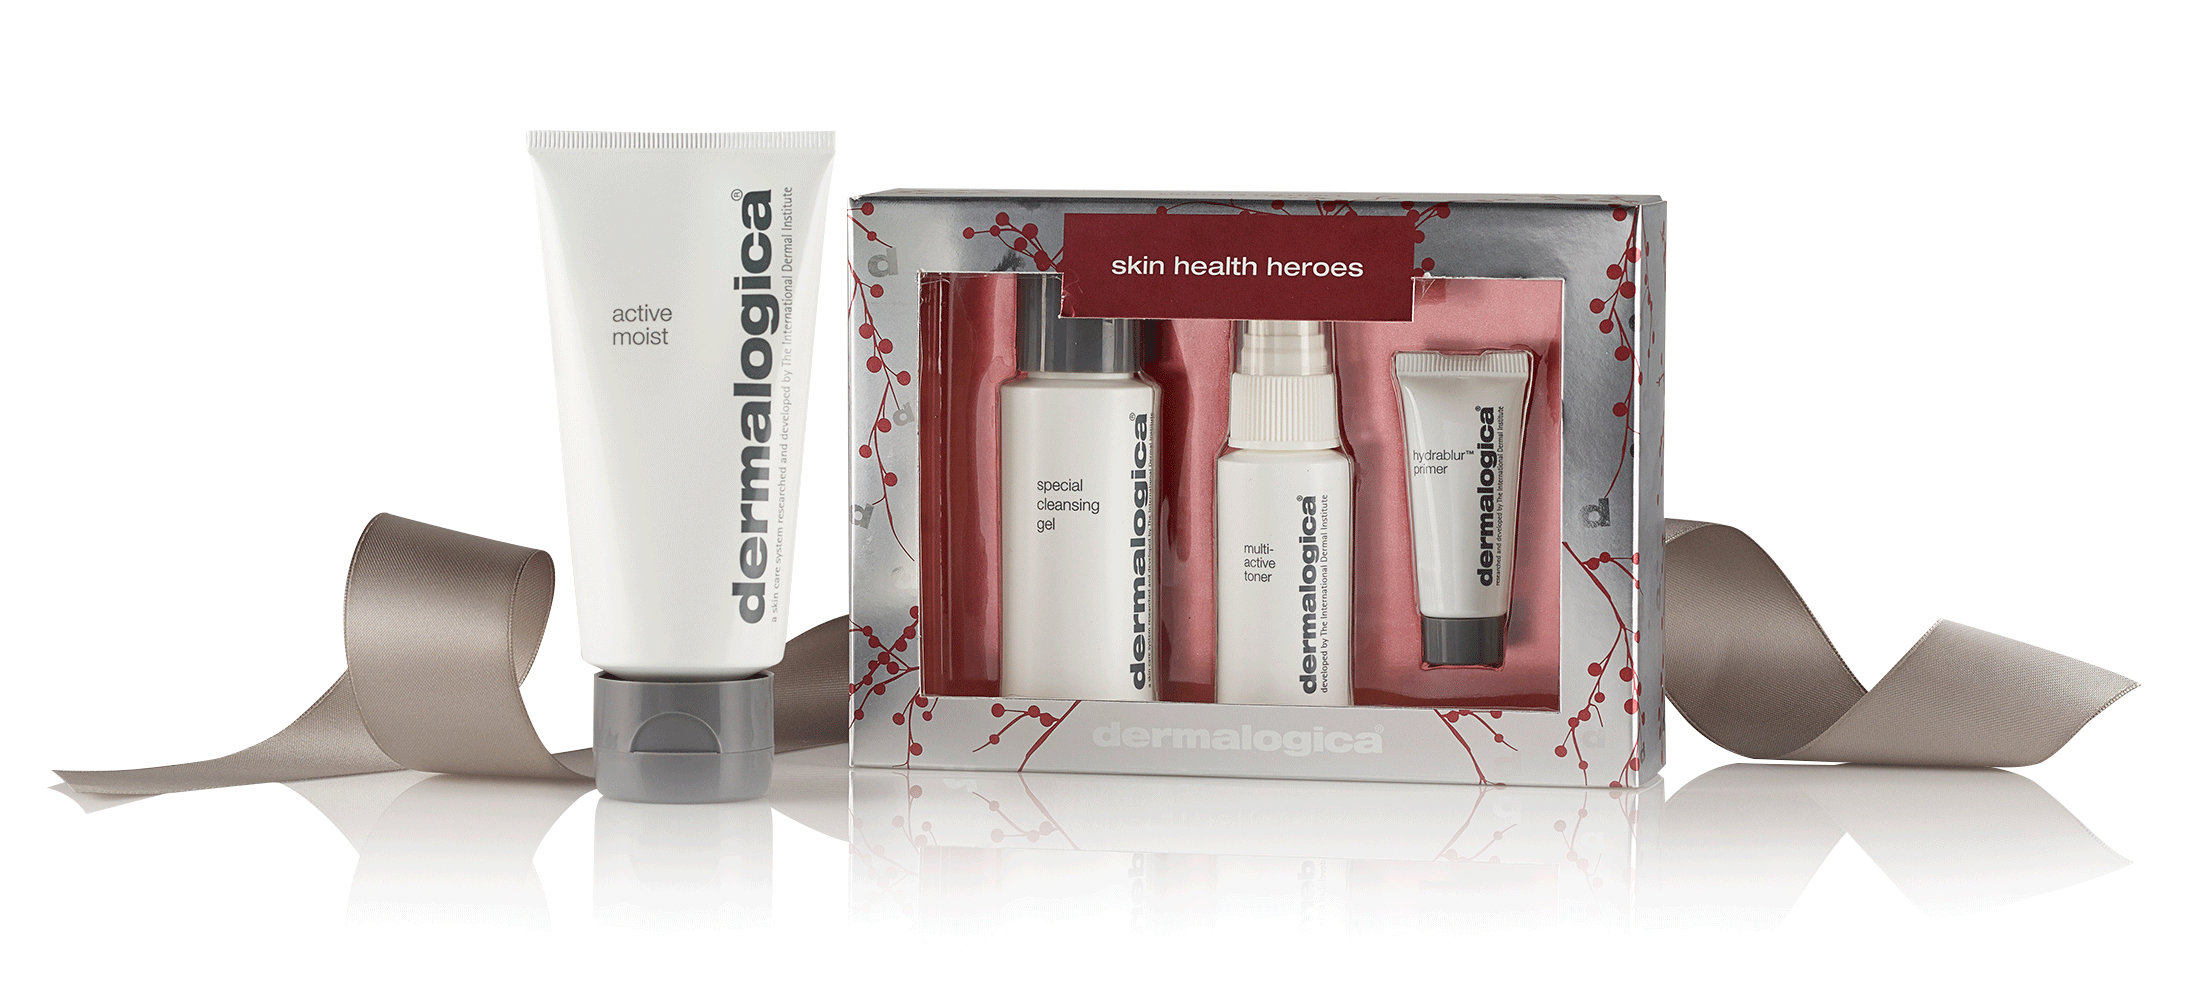 Receive a free 3-piece bonus gift with your qualifying moisturizer purchase